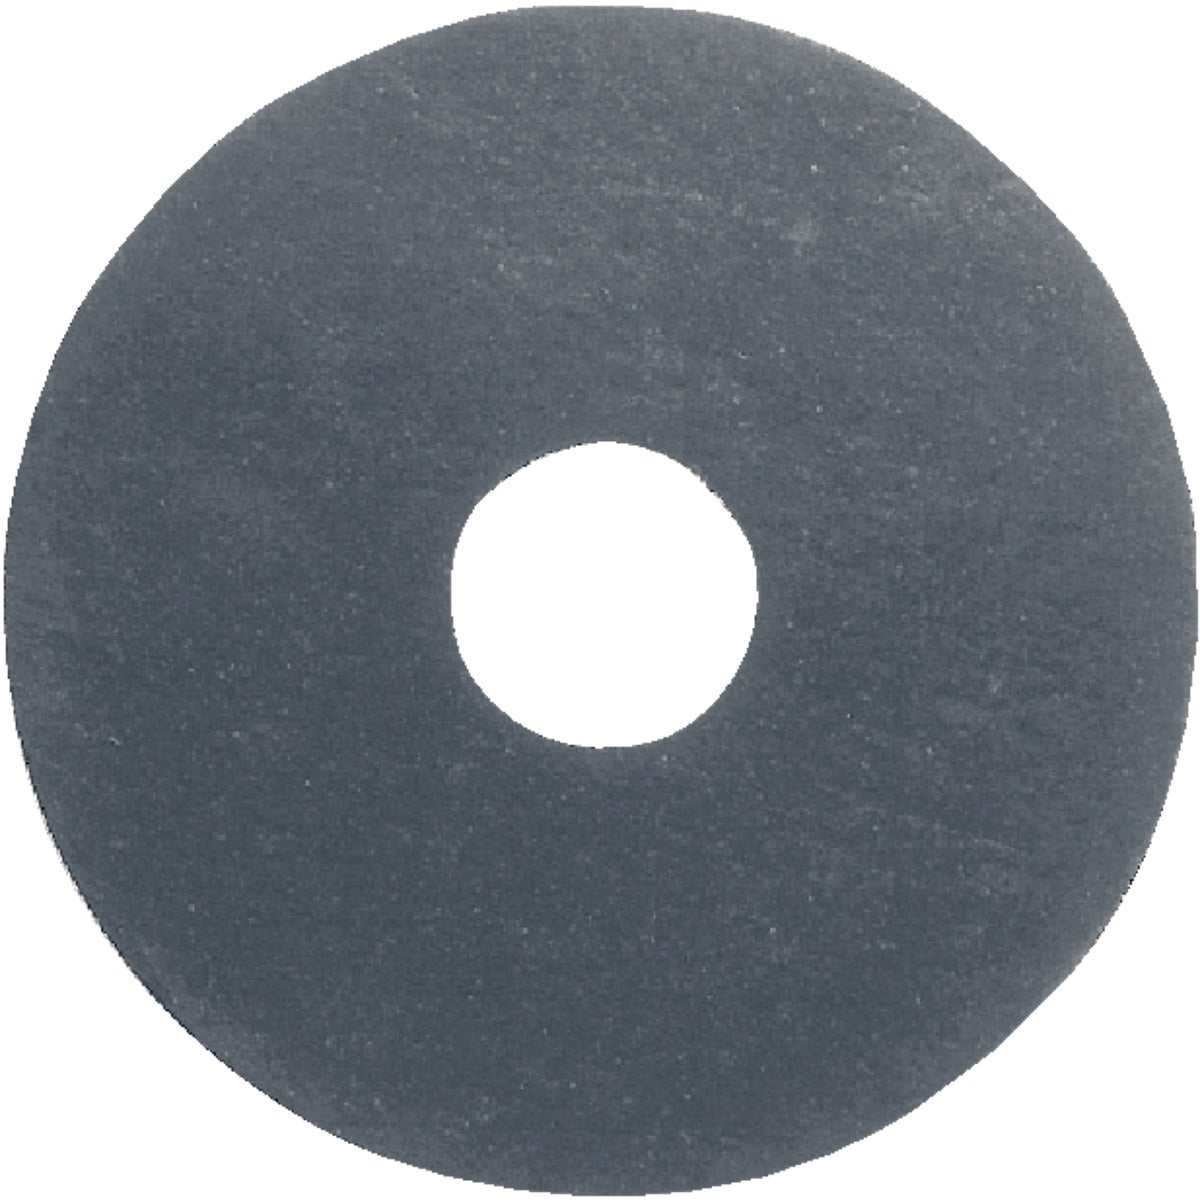 "1-1/2""OD WASHER - 61811B by Danco Perfect Match"